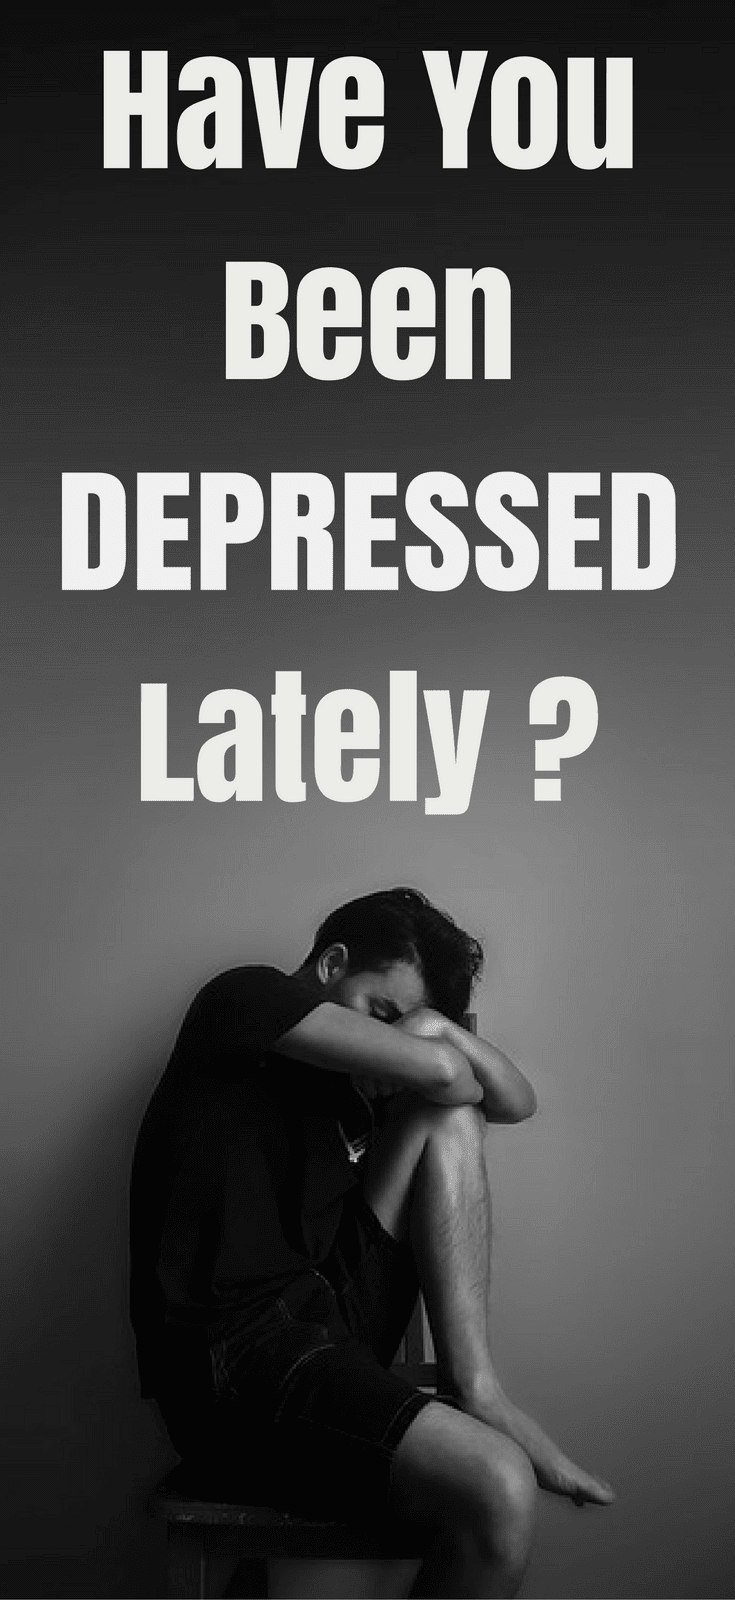 Have You Been Depressed Lately?